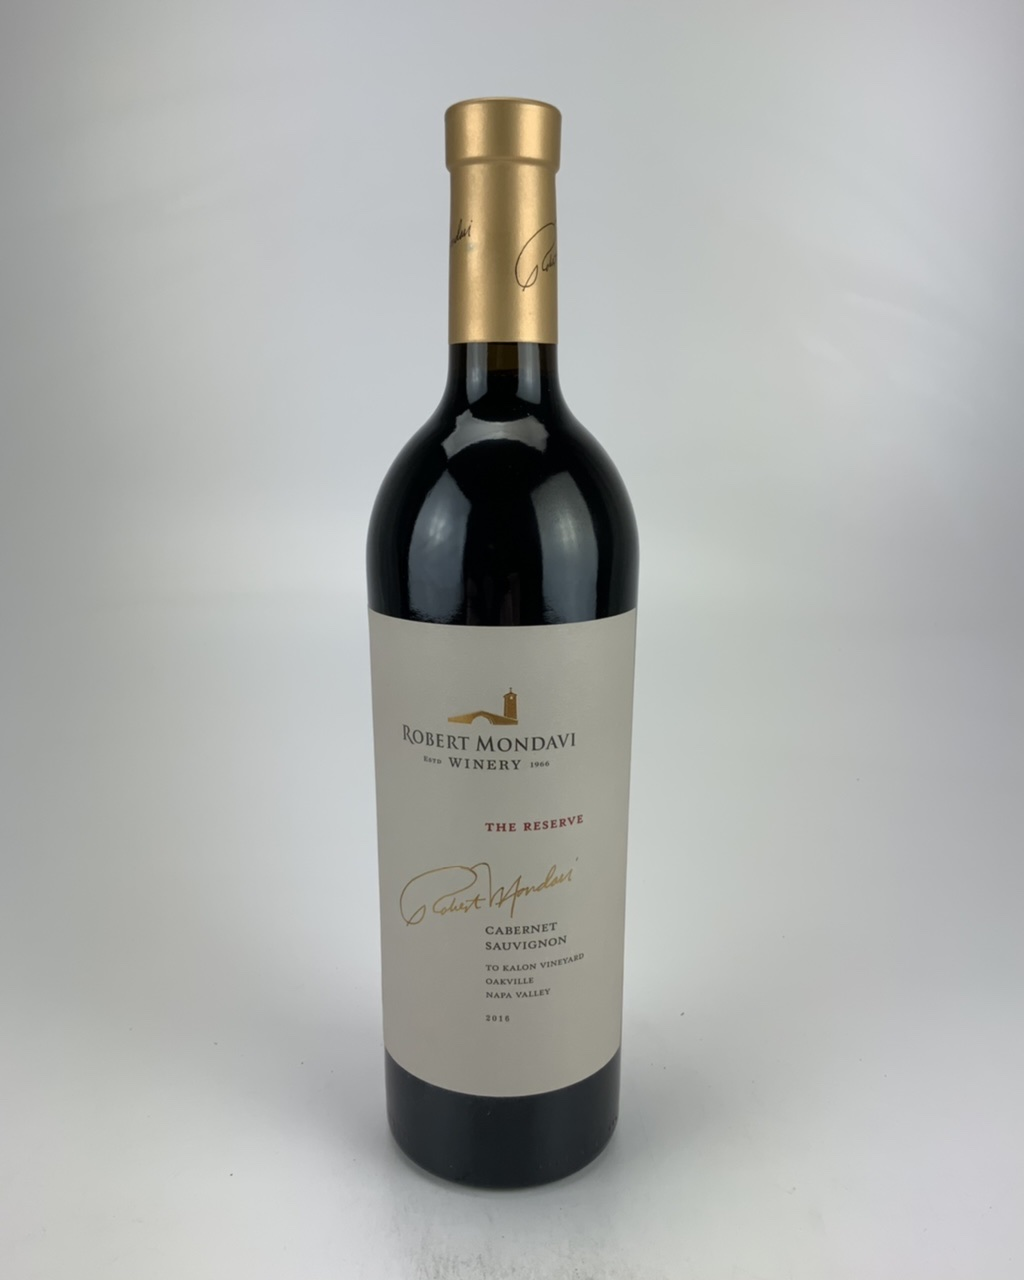 2016 Robert Mondavi The Reserve To Kalon Vineyard Cabernet Sauvignon RP--96 JD--96 JS--96